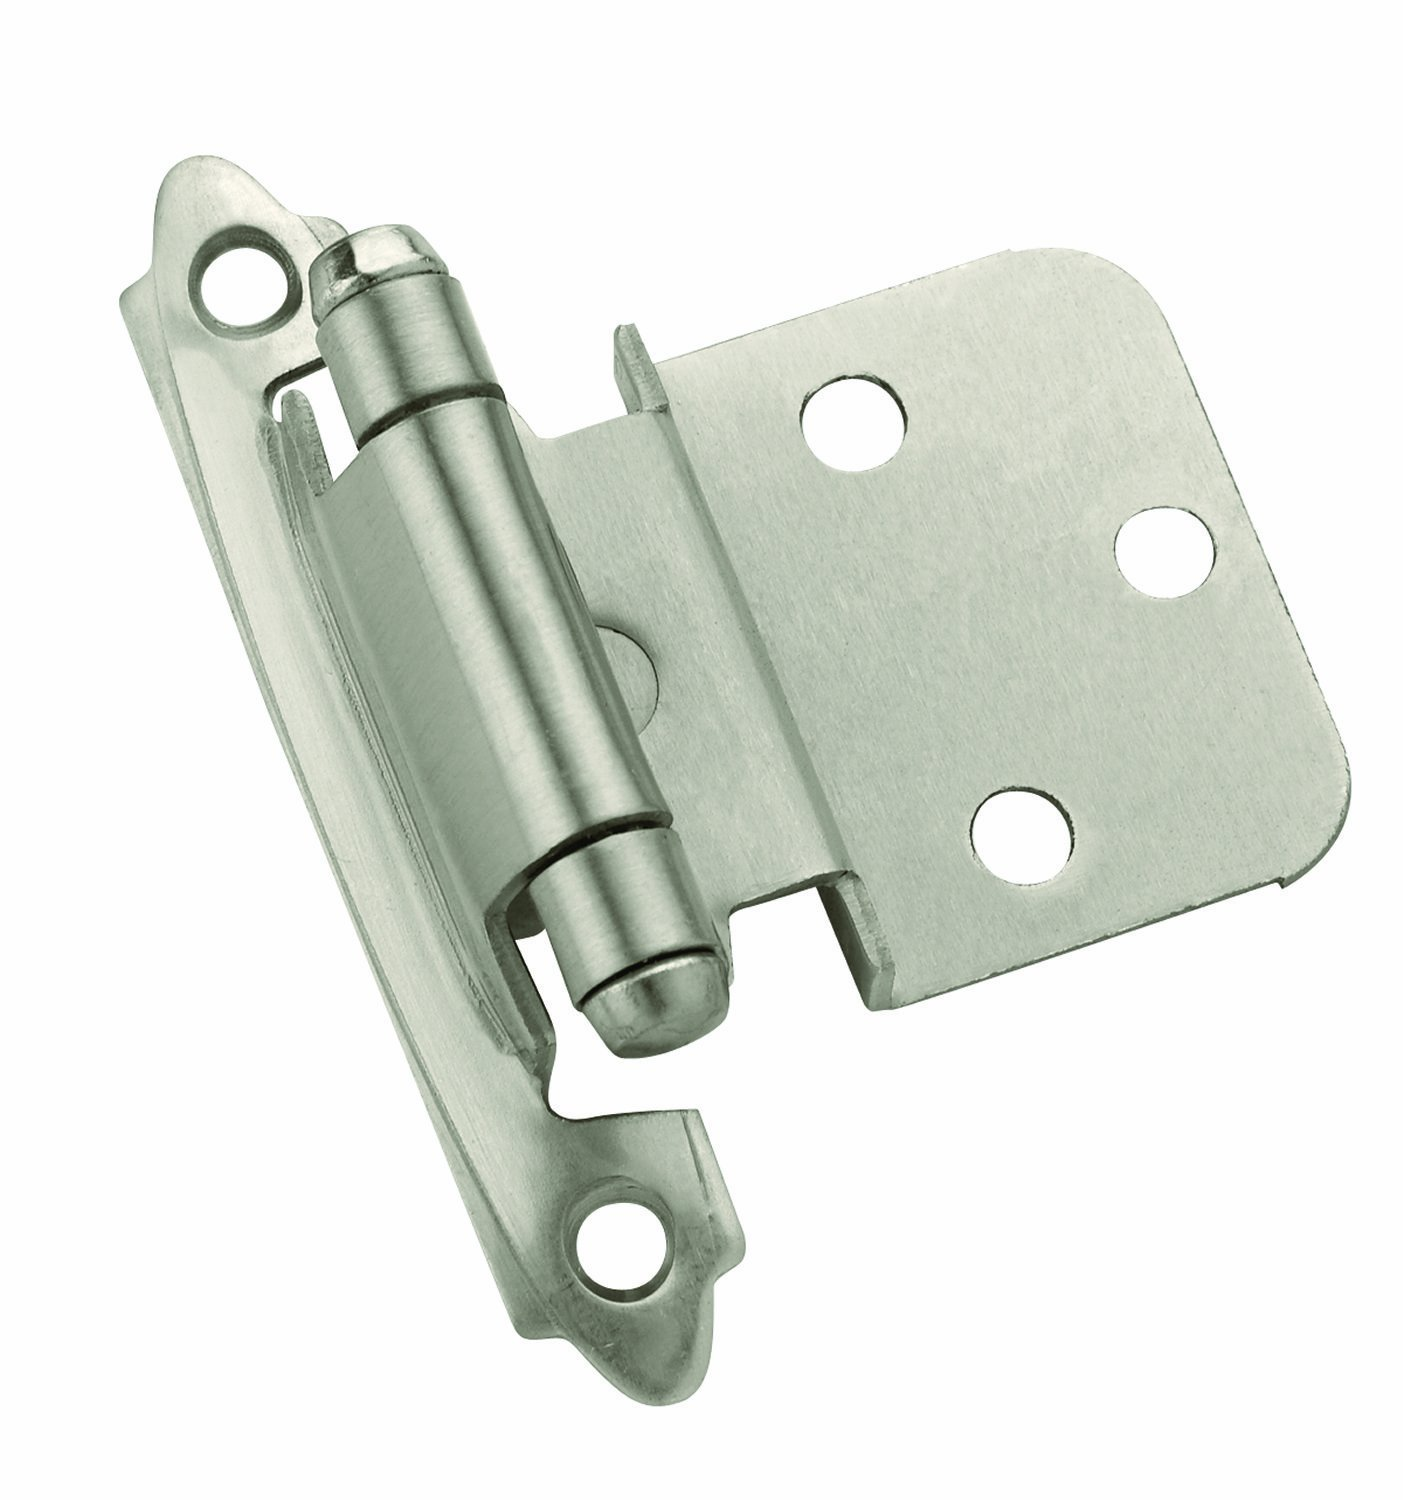 Basic kitchen cabinet hinges types 2016 for Kitchen cabinet hinges